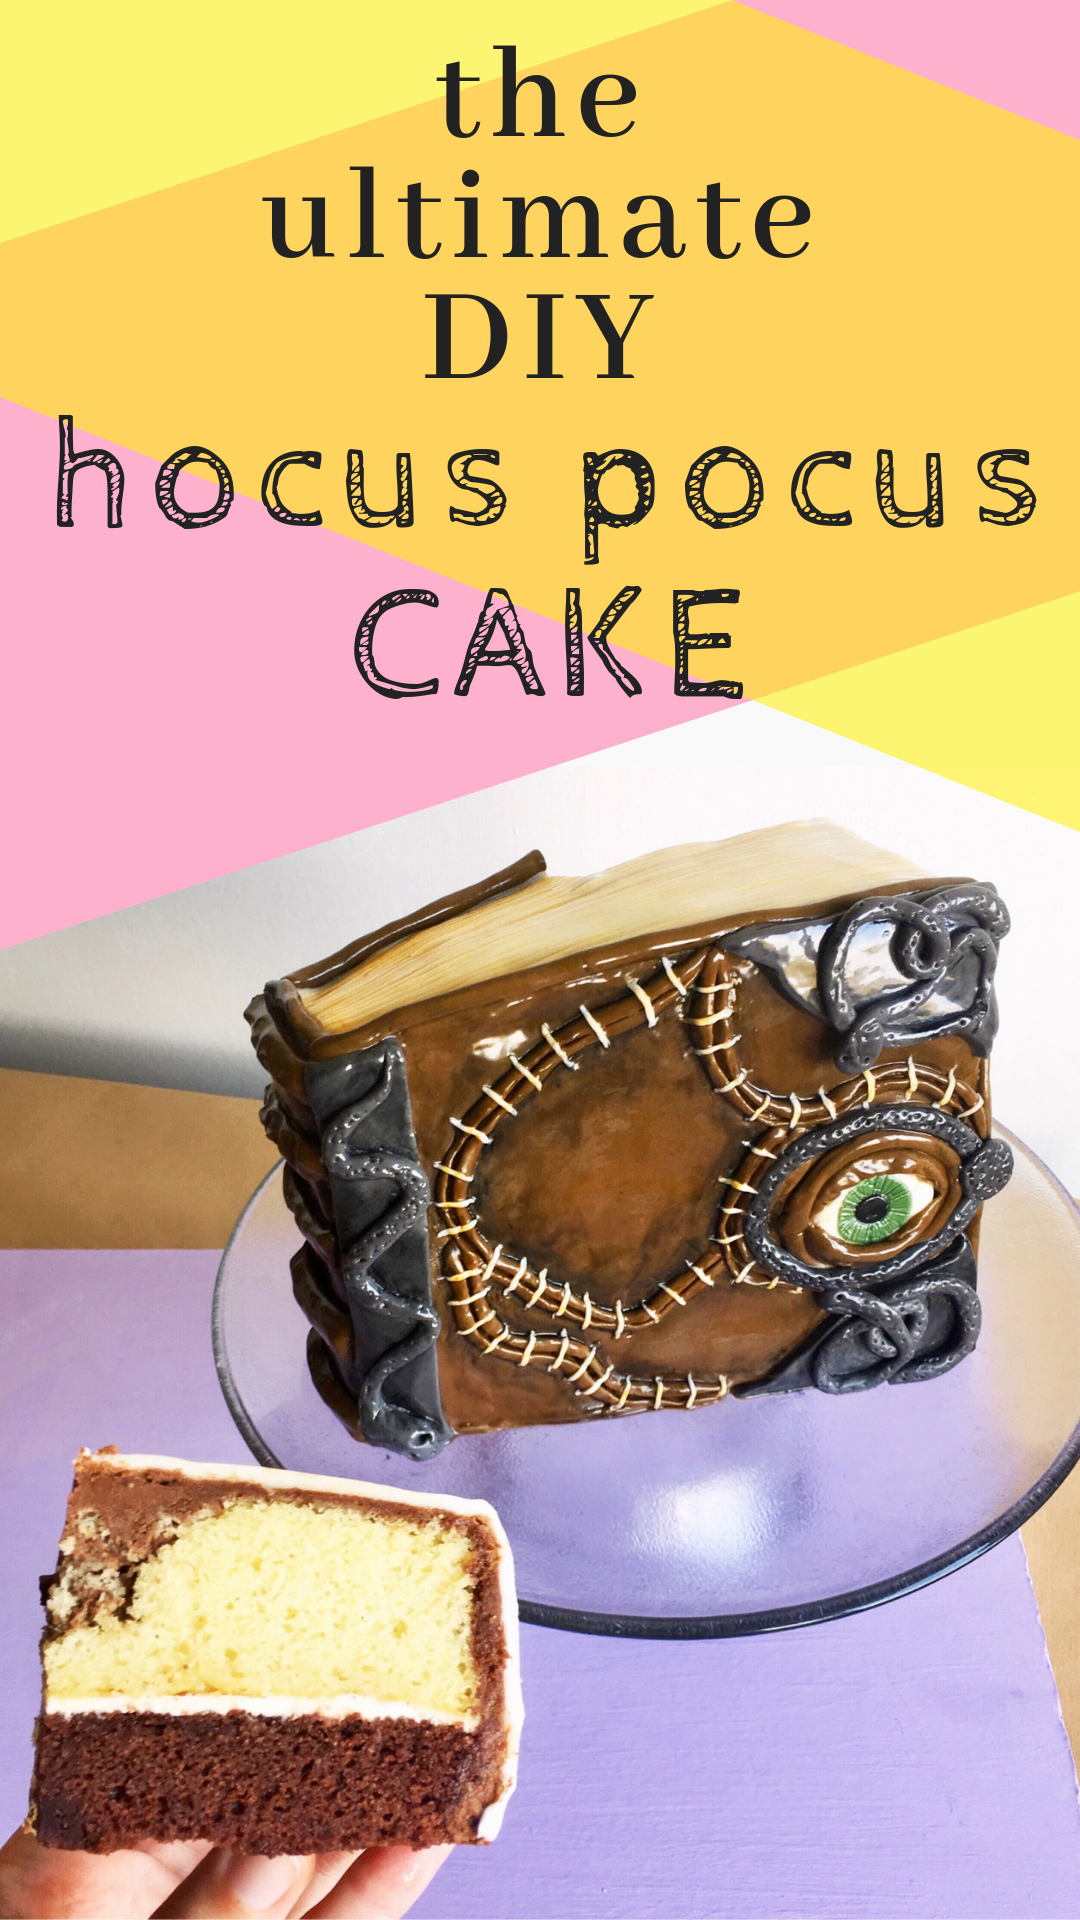 The ultimate DIY Hocus Pocus cake (it's way easier than it looks).png